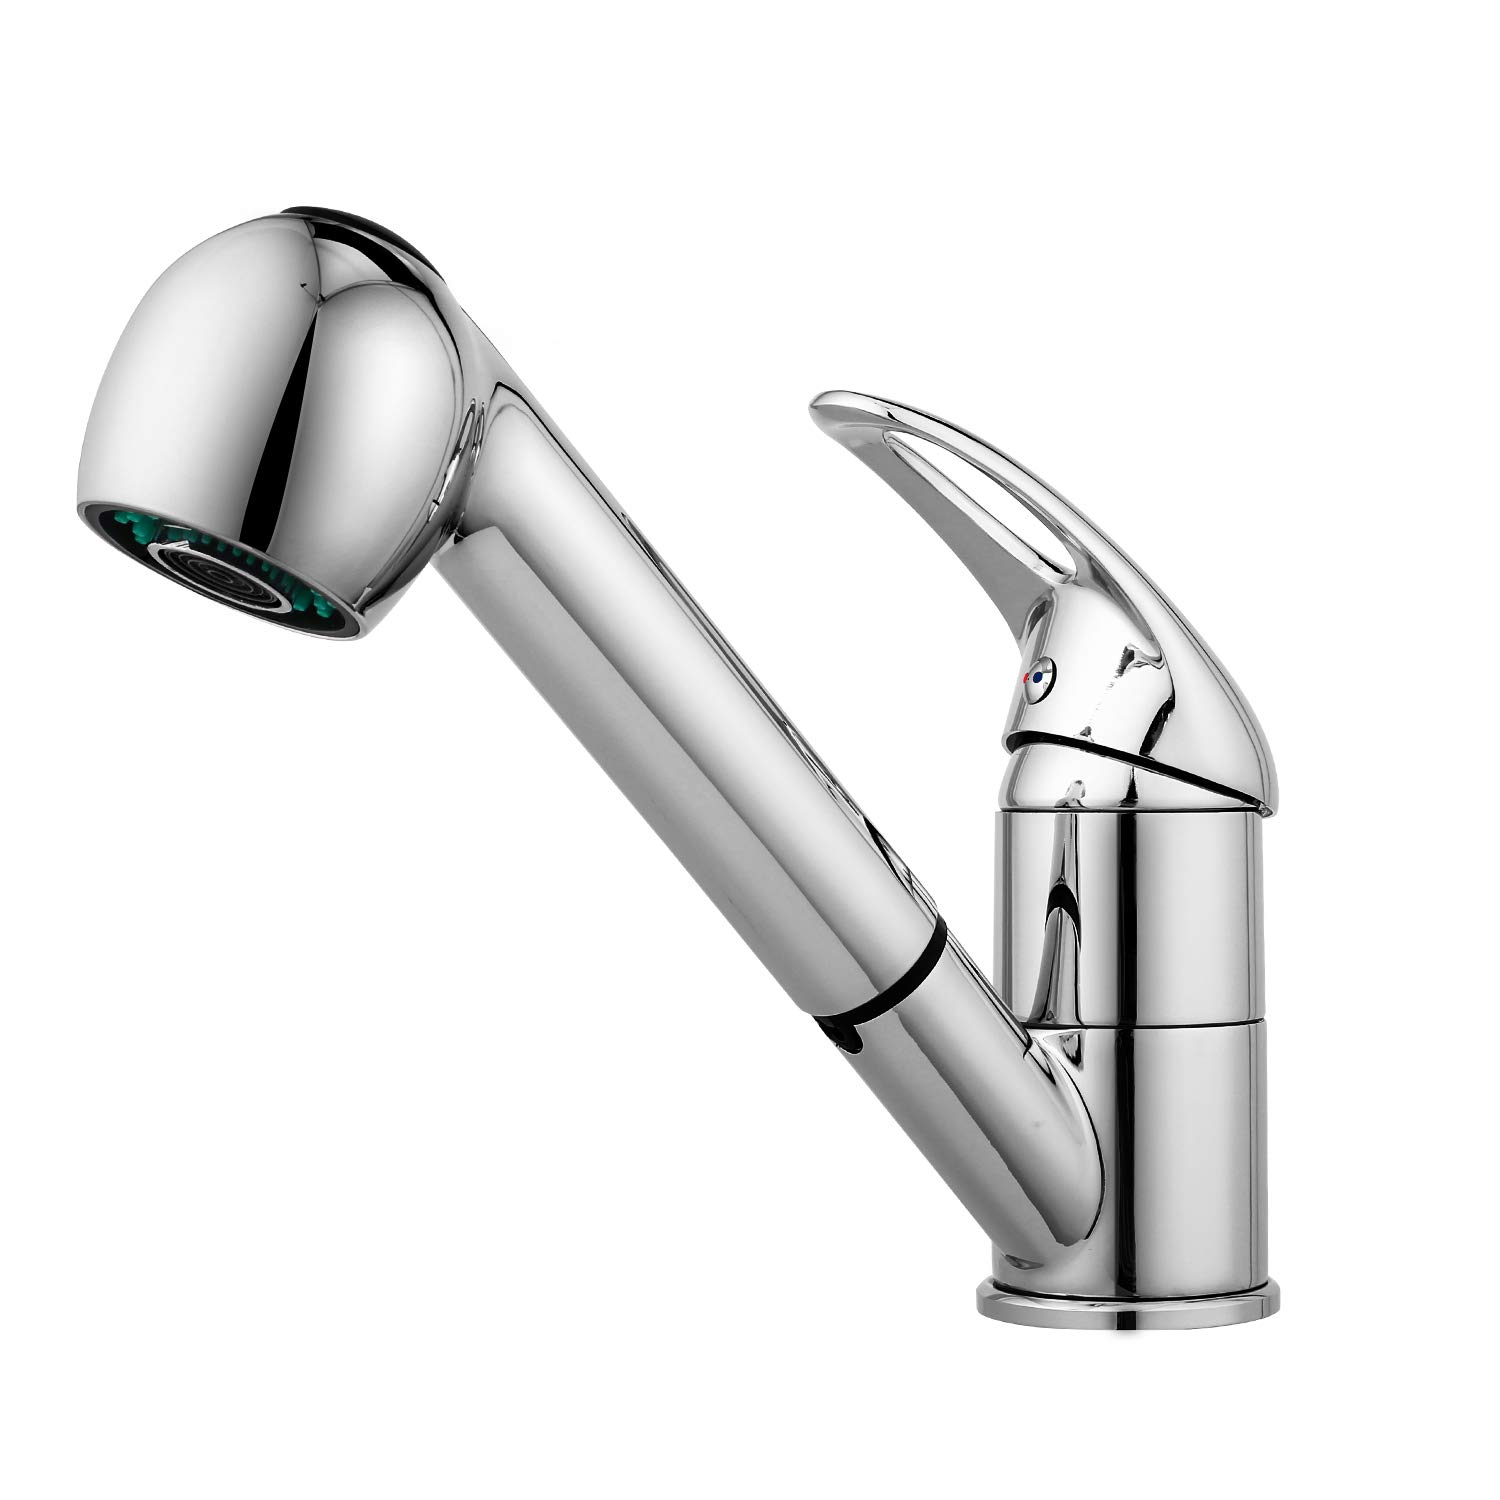 Kitchen Faucet, Modern Commercial Stainless Steel Single Bar Faucet Chrome Pull Down/Out Vessel Sink Faucets, Silver